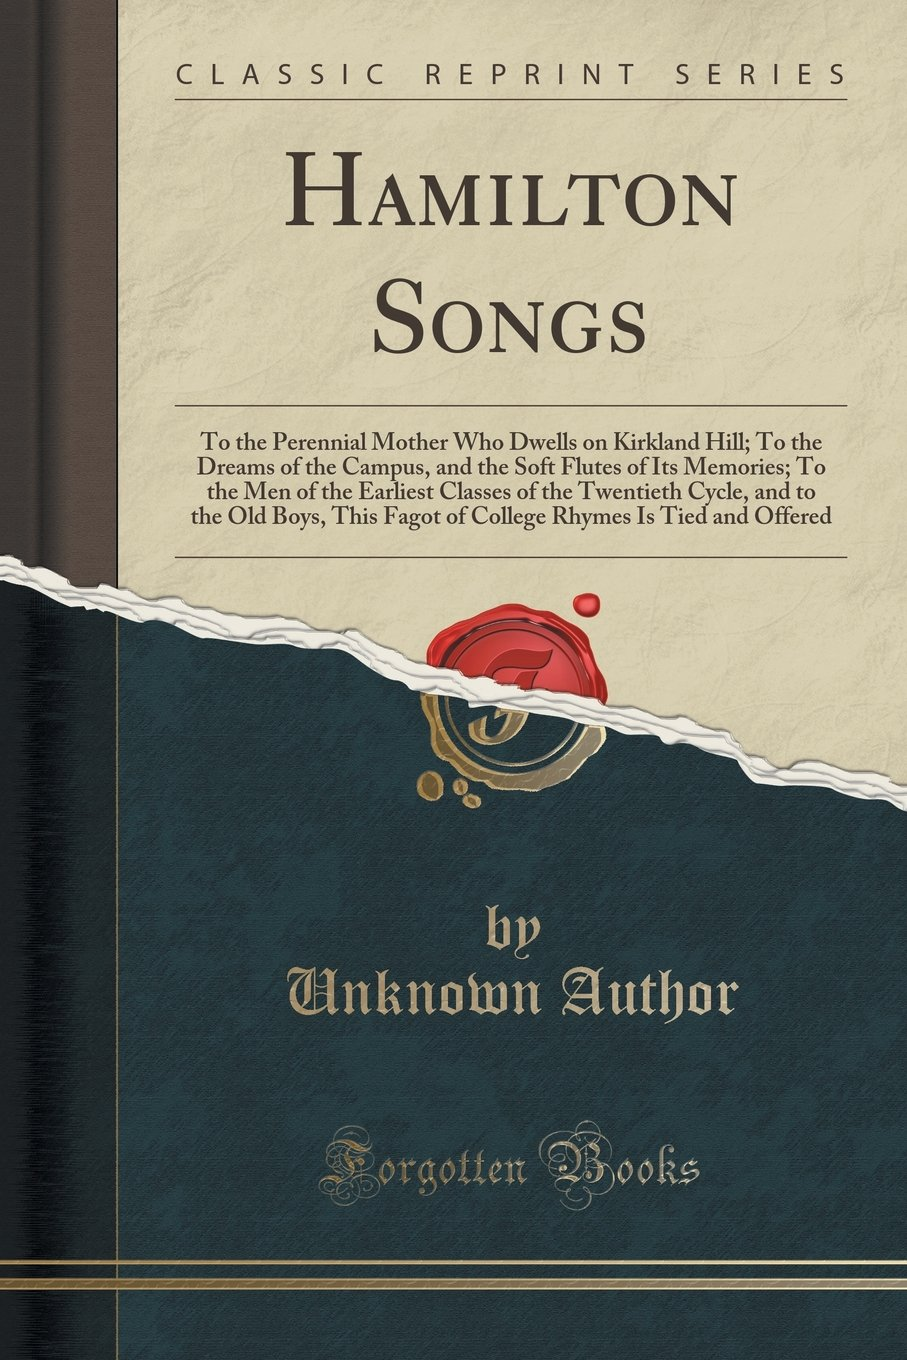 Download Hamilton Songs: To the Perennial Mother Who Dwells on Kirkland Hill; To the Dreams of the Campus, and the Soft Flutes of Its Memories; To the Men of ... This Fagot of College Rhymes Is Tied and pdf epub